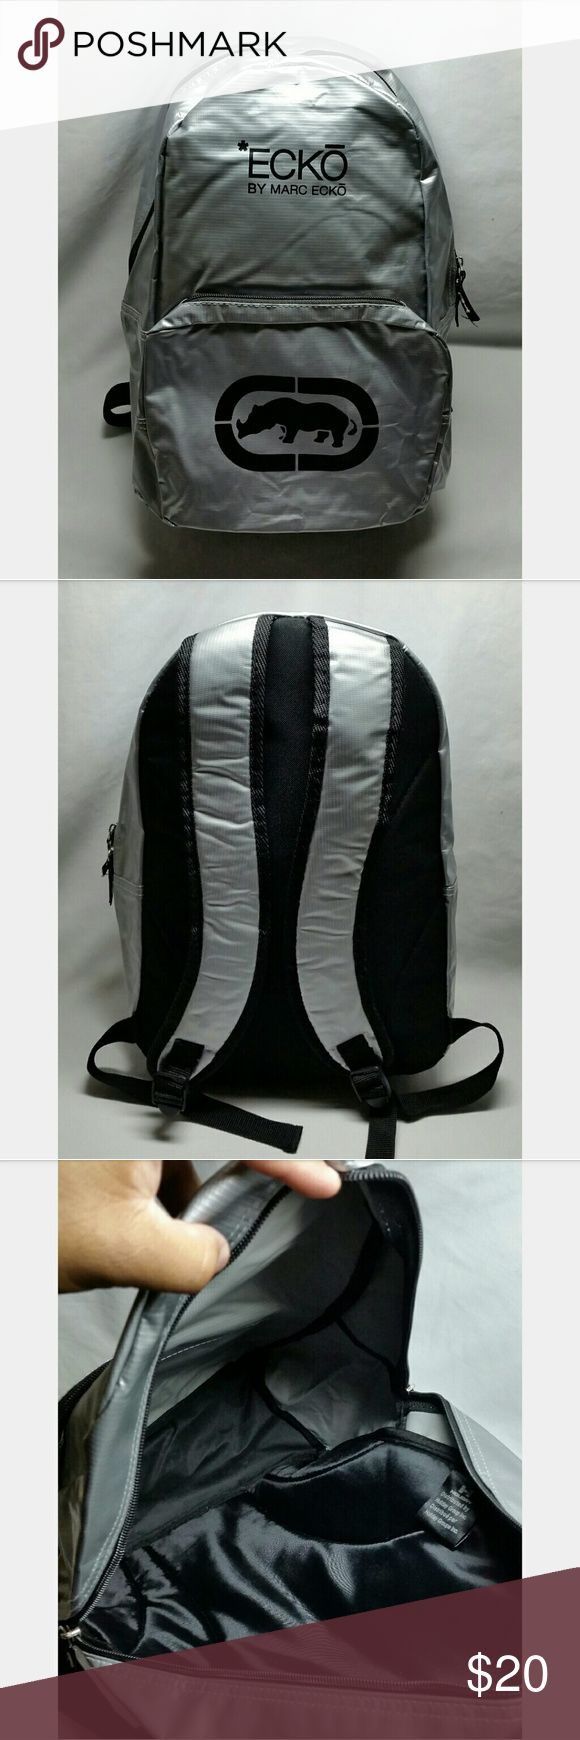 Google themes ecko - Ecko By Marc Ecko Backpack 100 Authentic Never Used Comes As Seen In Pictures